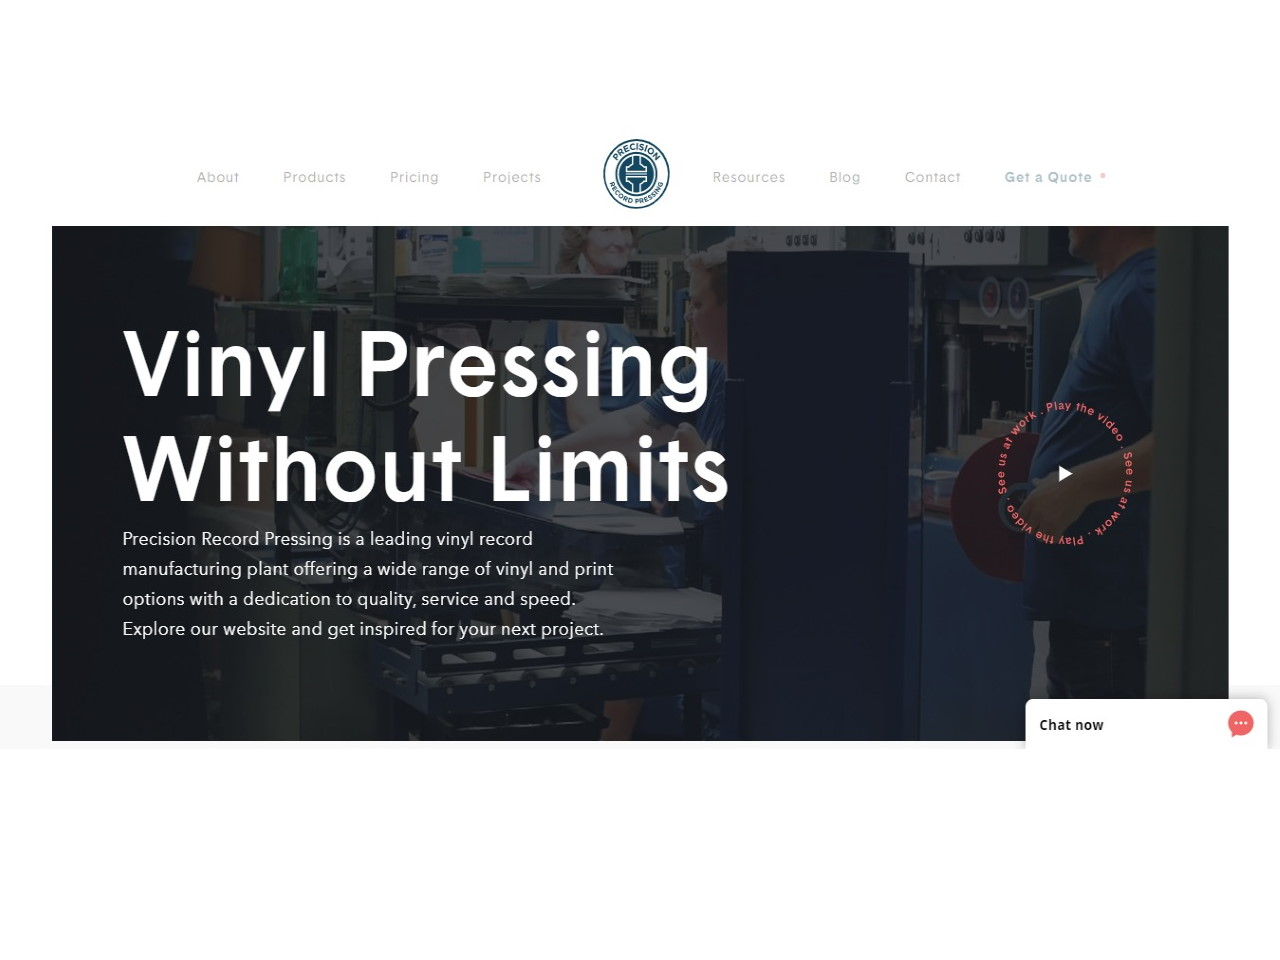 Precision Record Pressing Vinyl Pressing Without Limits